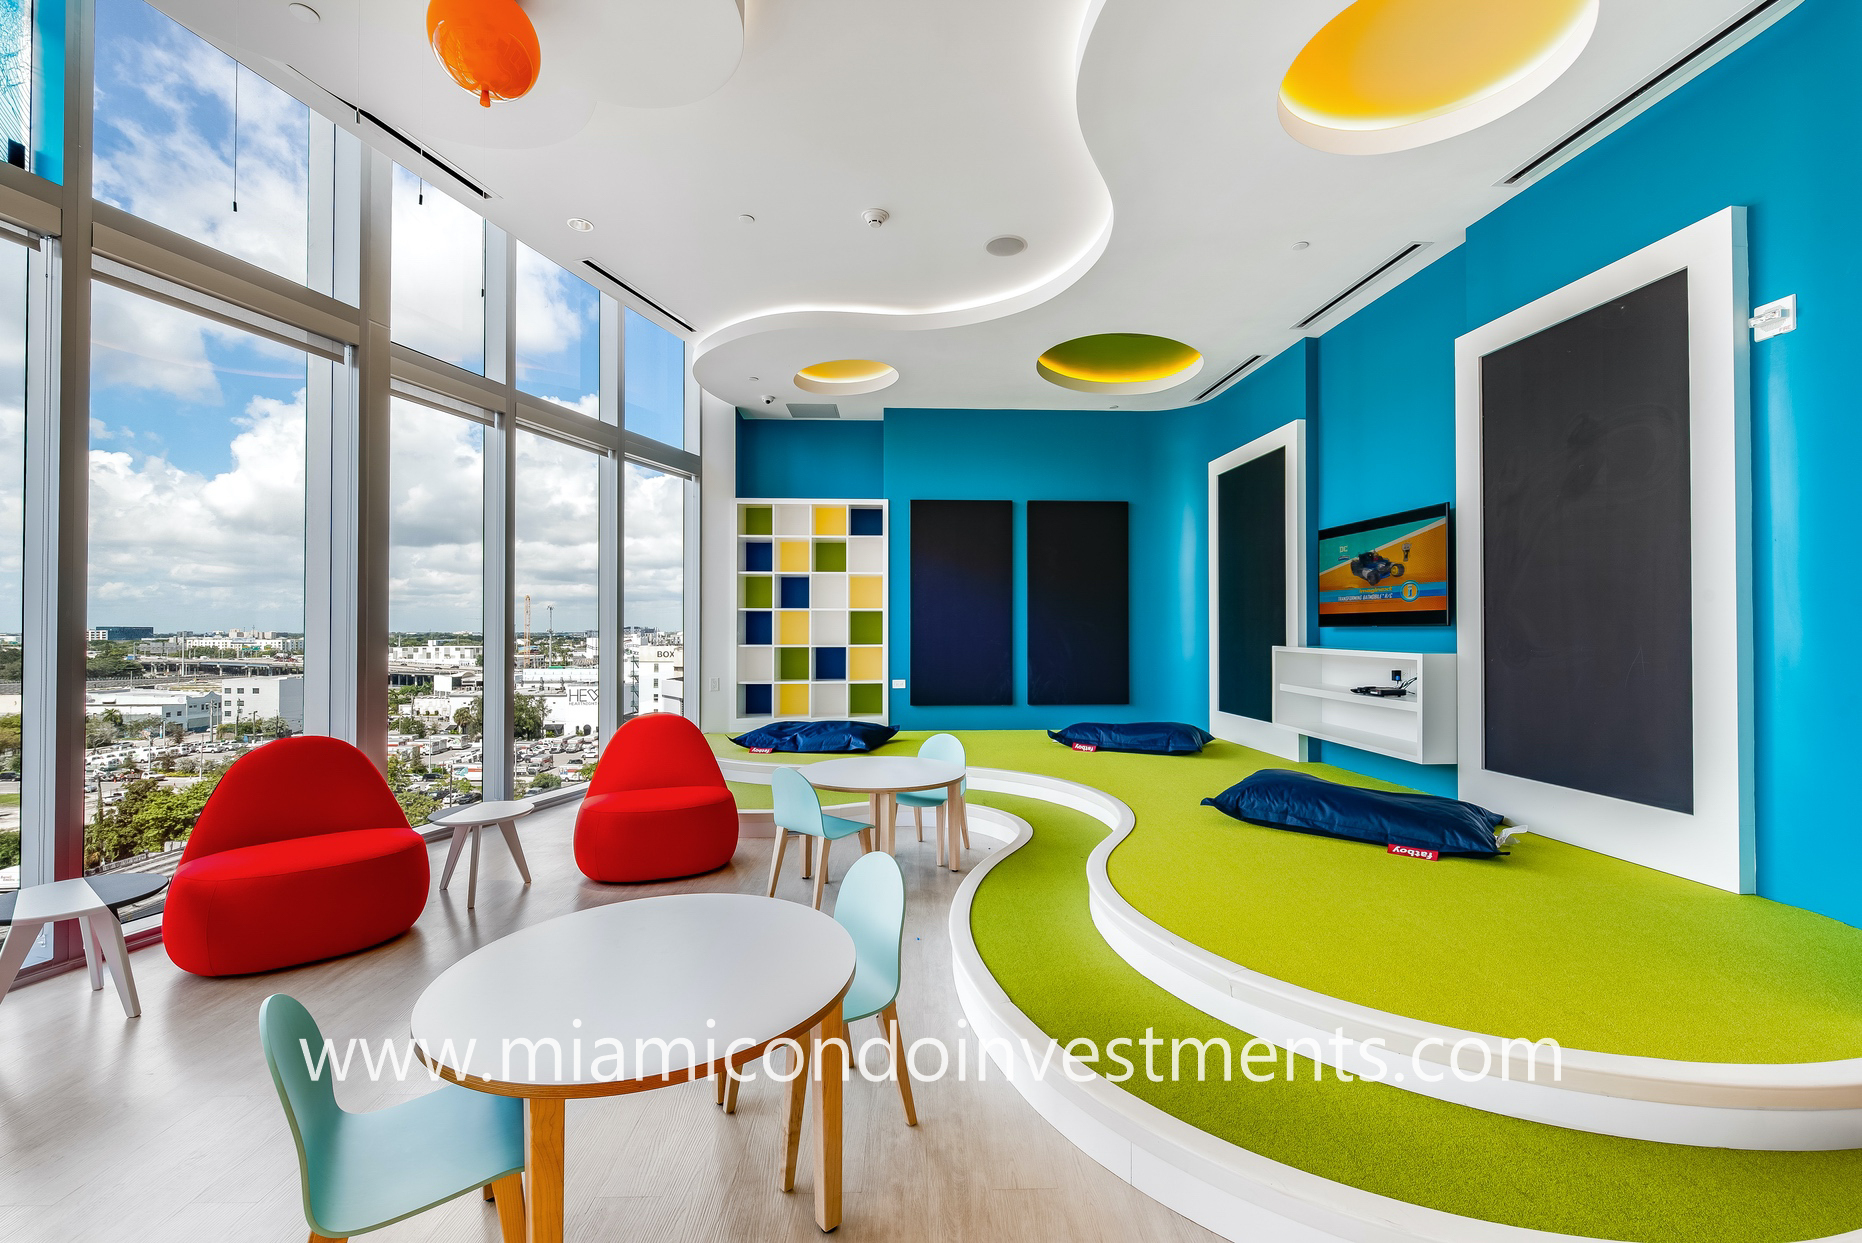 Paramount Miami Worldcenter children's playroom